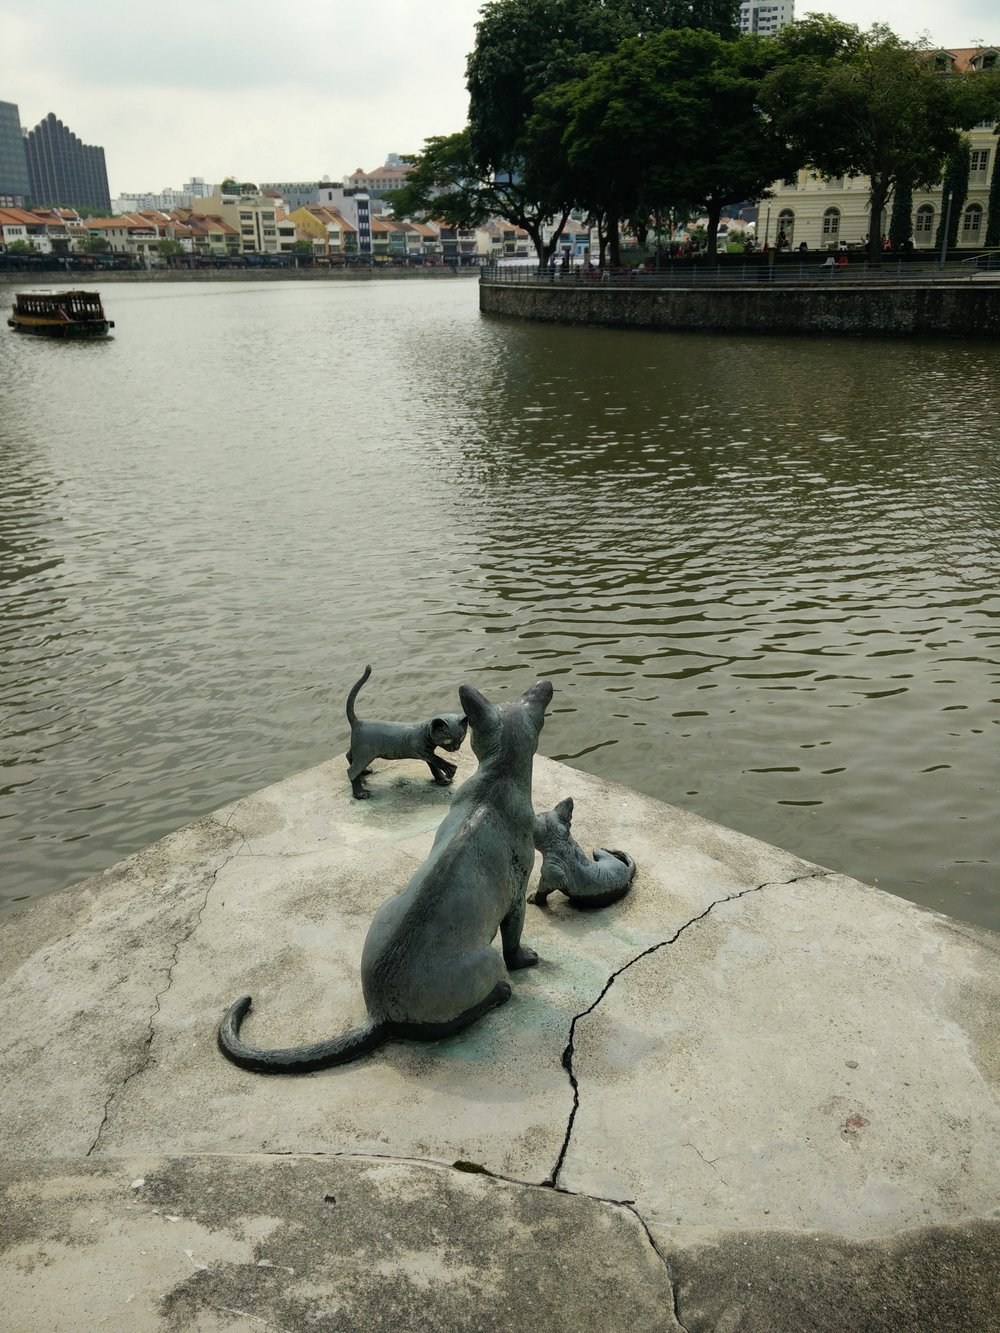 A life size sculpture of cats, almost unnoticeable - these depict Kucinta Cats, a Singapore street cat. They were once part of a group of 15 cat sculptures placed around the Singapore River